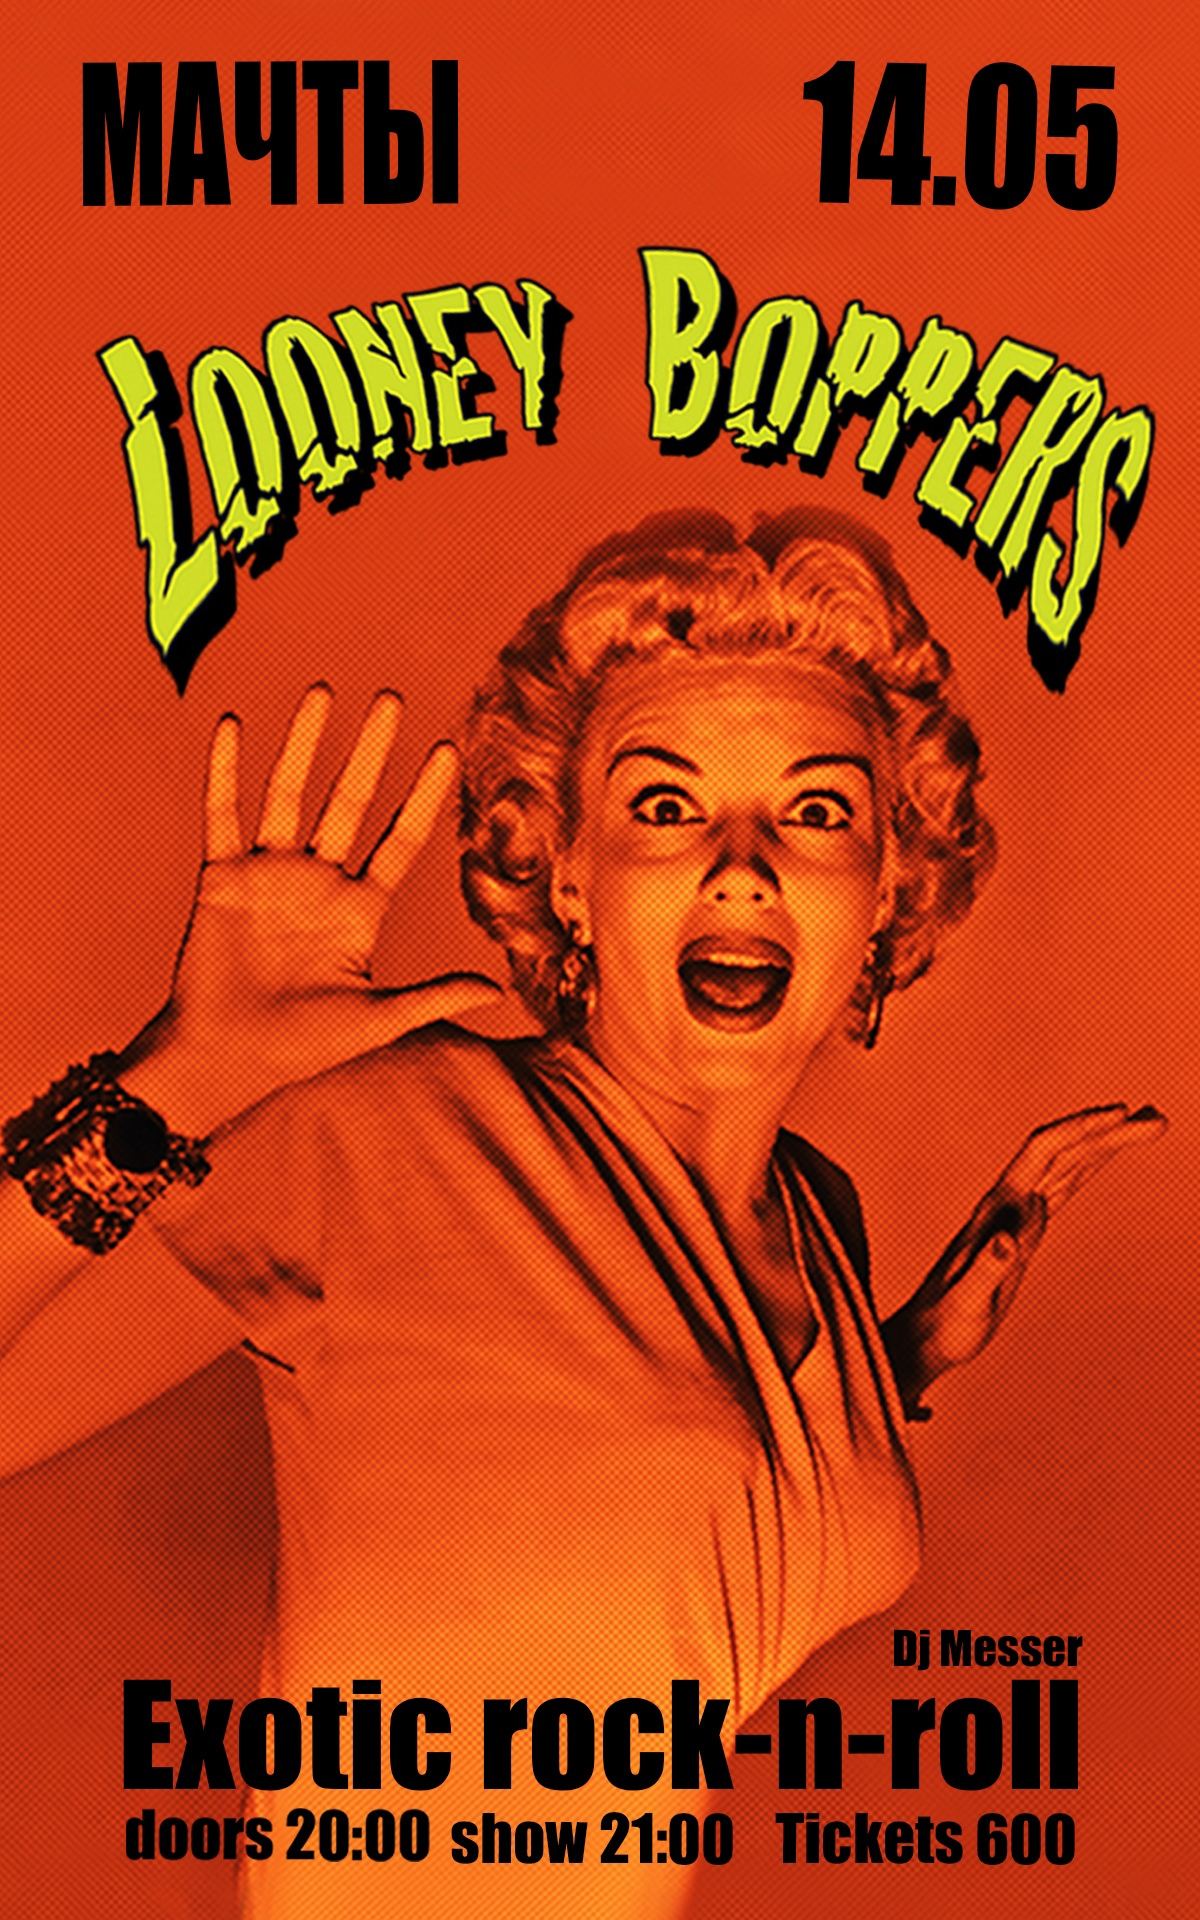 14.05 Exotic Rock-n-Roll Night With Looney Boppers в клубе Мачты!